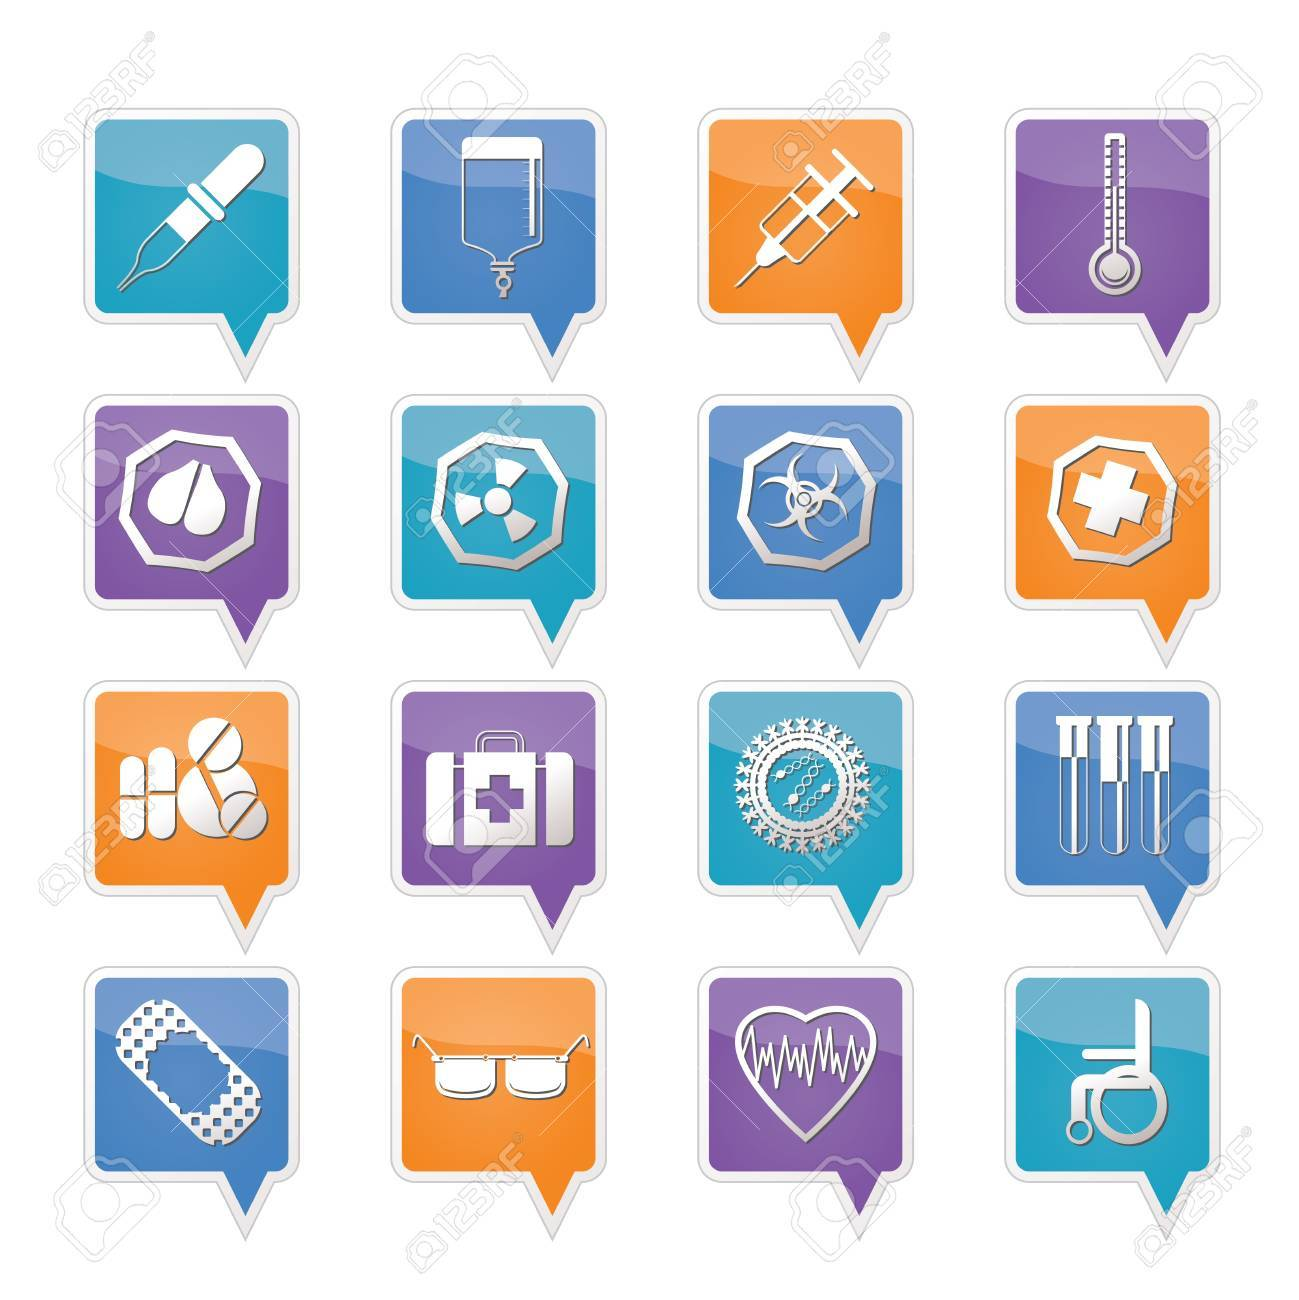 Simple  medical themed icons and warning-signs - vector Icon Set Stock Vector - 11780336